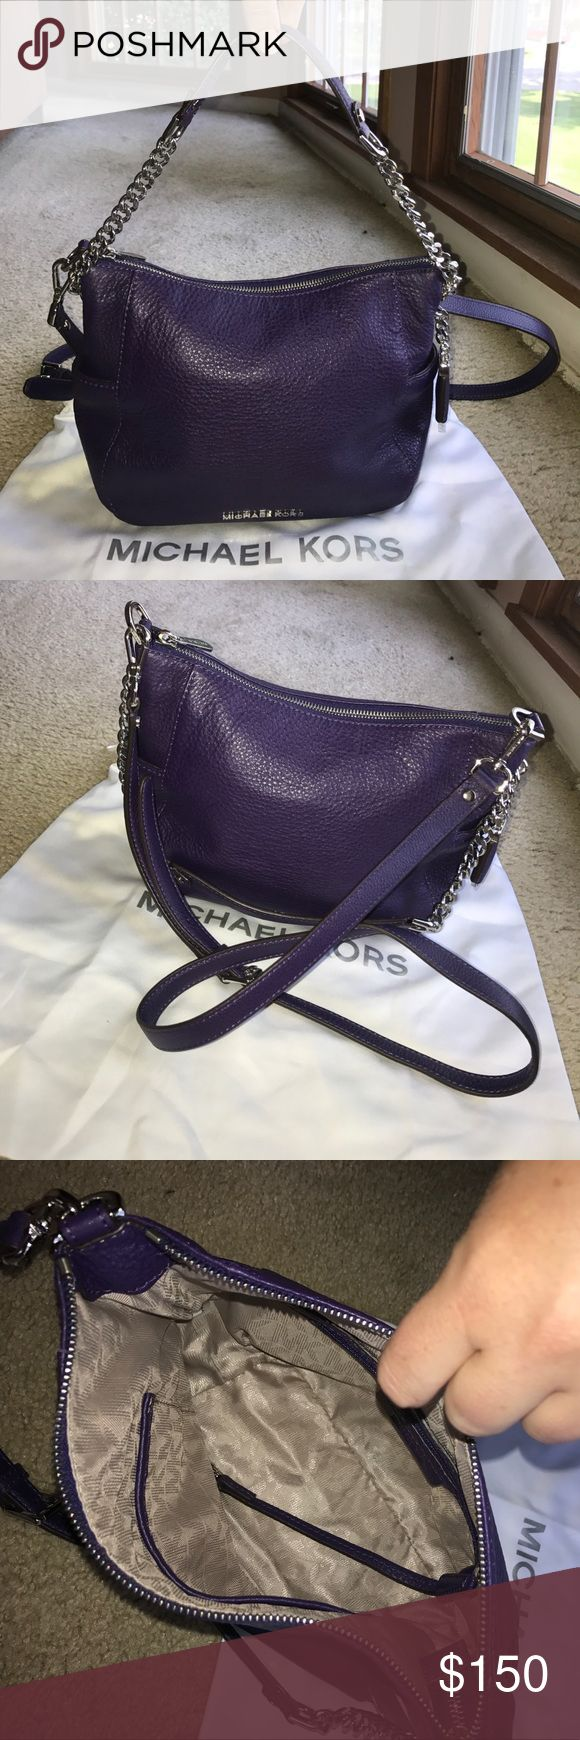 Michael Kors cross-body, soft leather handbag Michael Kors deep purple, soft leather, cross body handbag, with silver accents.  I purchased this bag a few years back and only used it once or twice. Beautiful bag, pretty much brand new!  Purchased at Macy's. Michael Kors Bags Crossbody Bags